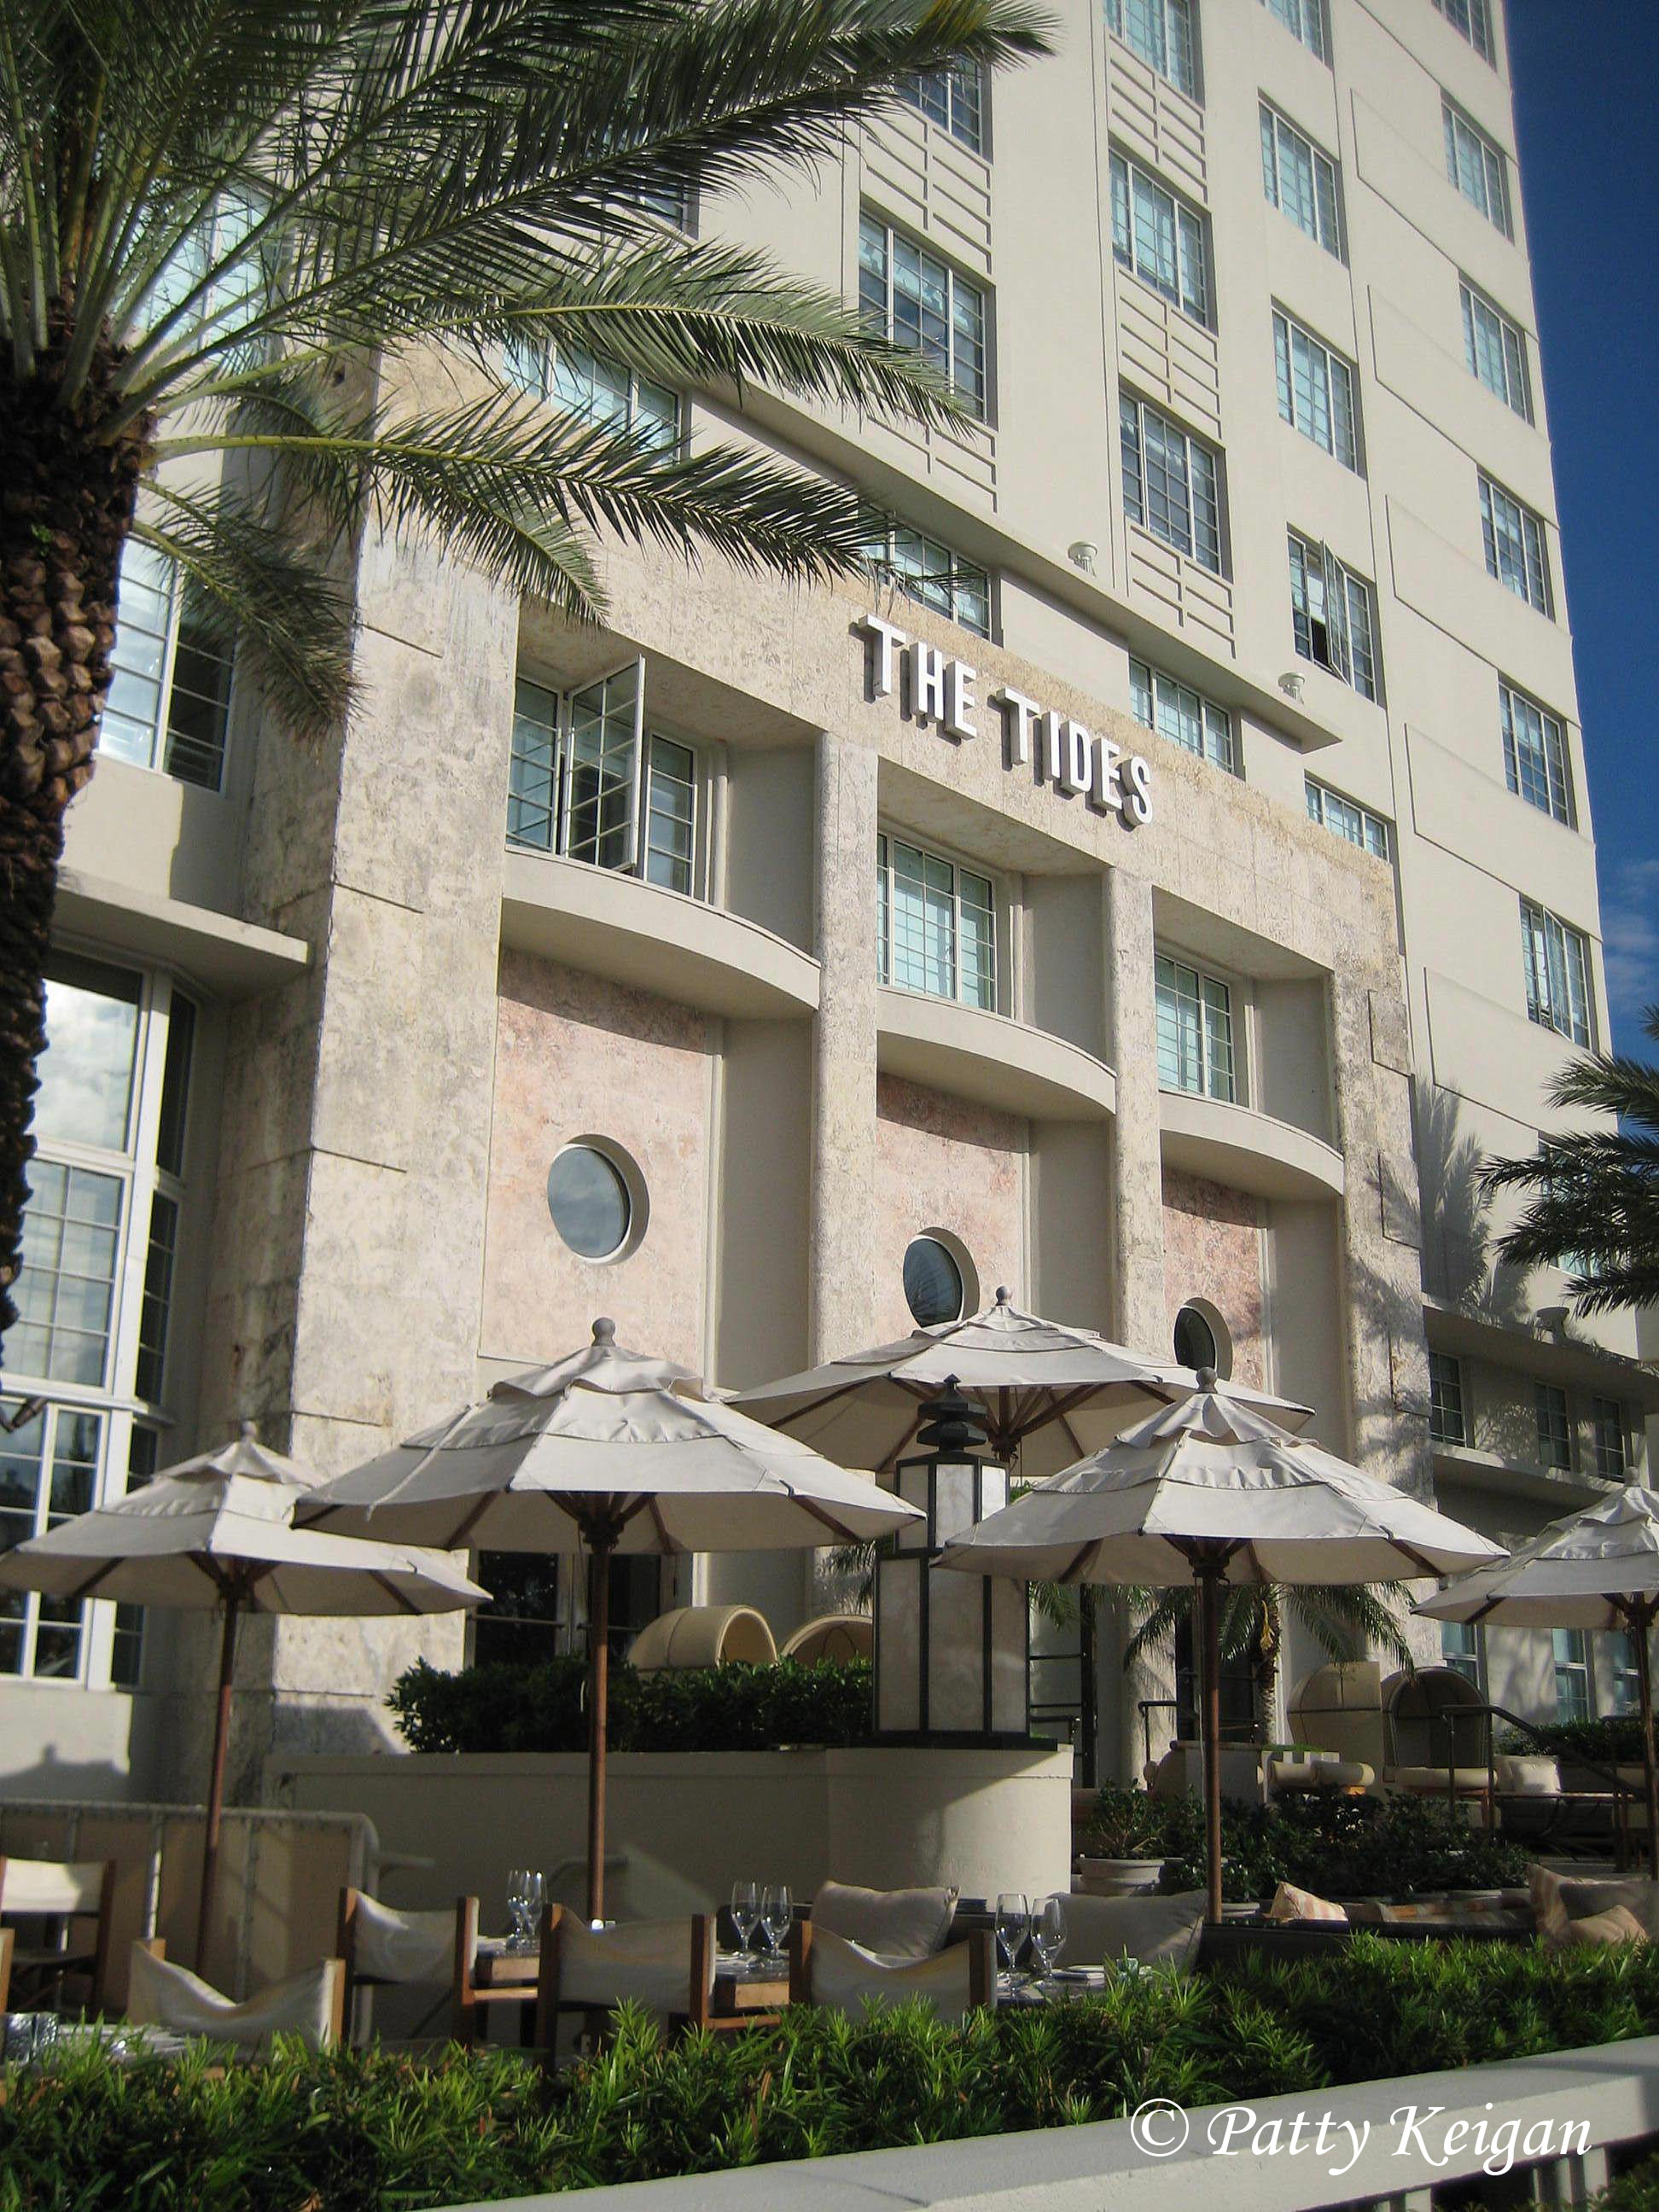 File The Tides South Beach Summer 2008 Patty Keigan 3186166922